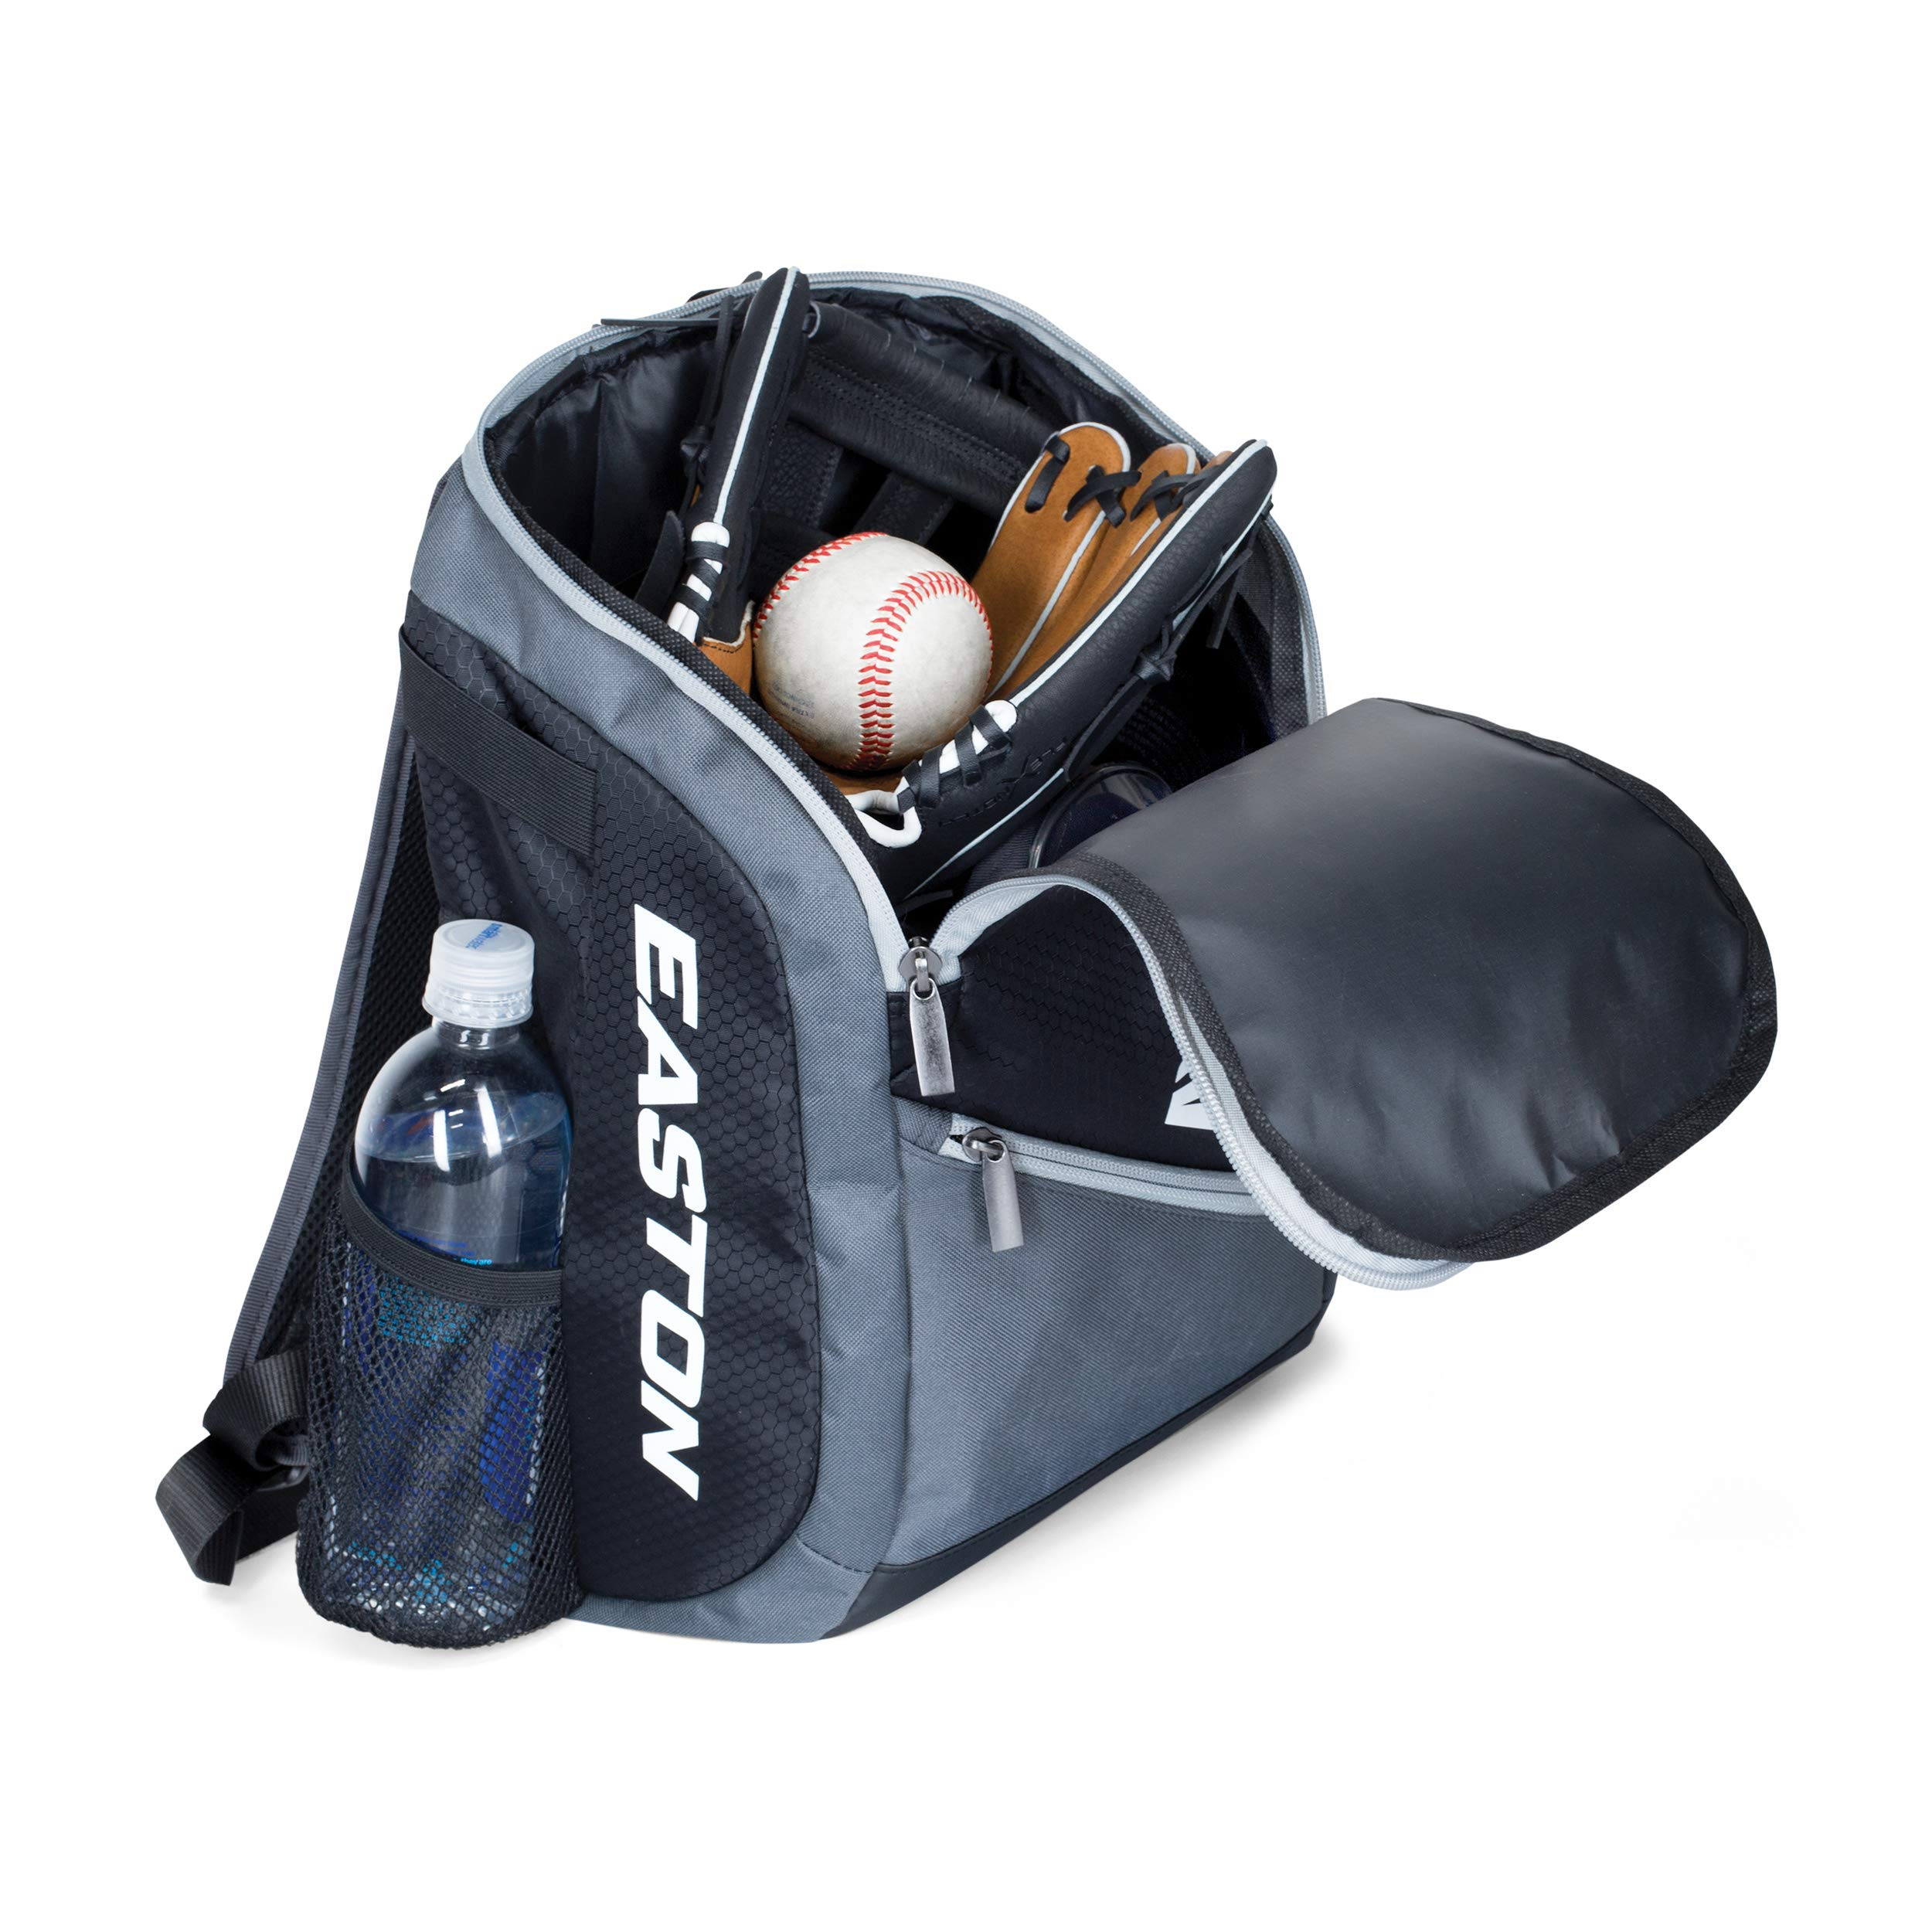 EASTON GAME READY Youth Bat & Equipment Backpack Bag | Baseball Softball | 2019 | Red White Blue | 2 Bat Pockets | Vented Main Compartment | Vented Shoe Pocket | Valuables Pocket | Fence Hook by Easton